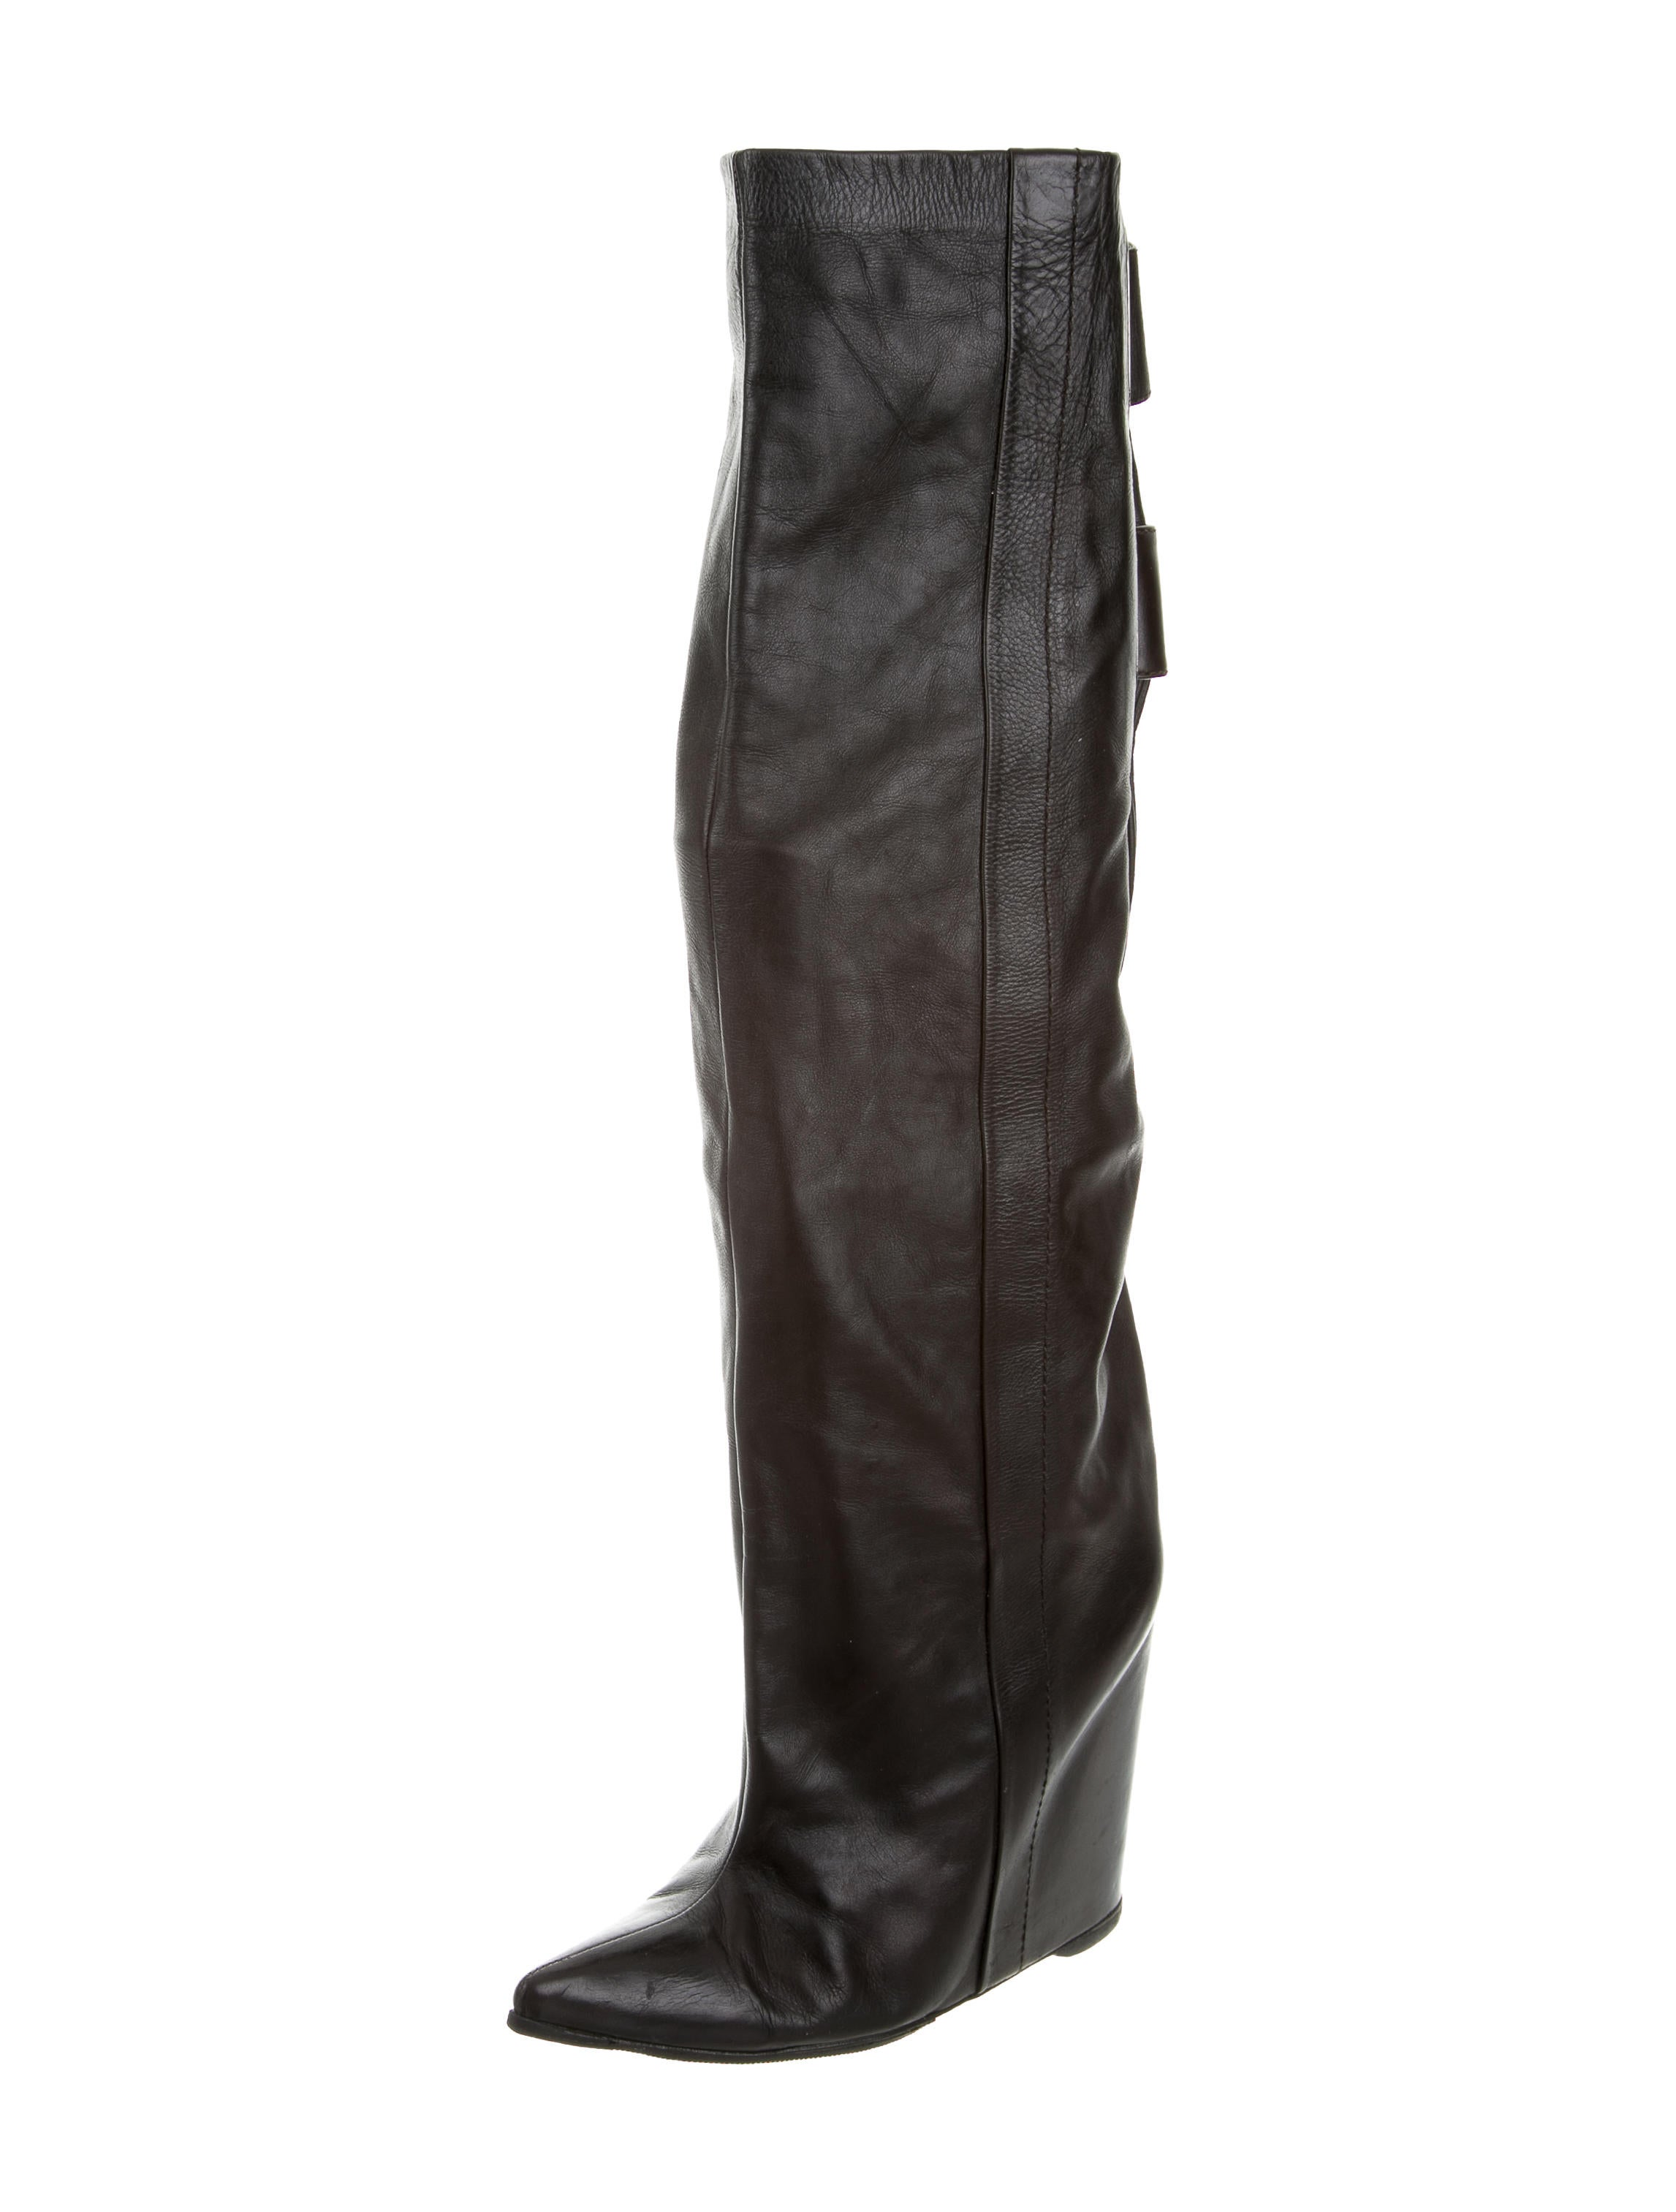 balenciaga leather pointed toe wedge boots shoes